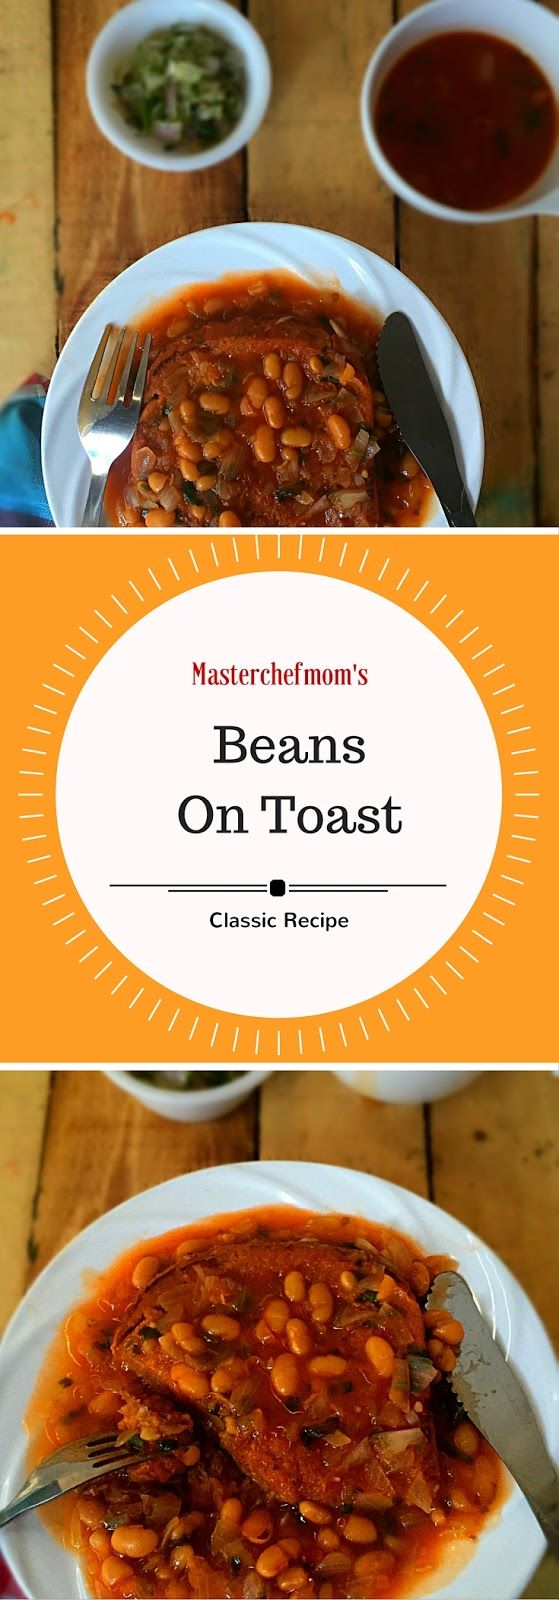 MASTERCHEFMOM: Beans On Toast | Restaurant Style Baked Beans On Toast | How to make Beans On Toast at Home | Continental Breakfast Recipe | Quick and Easy Recipe